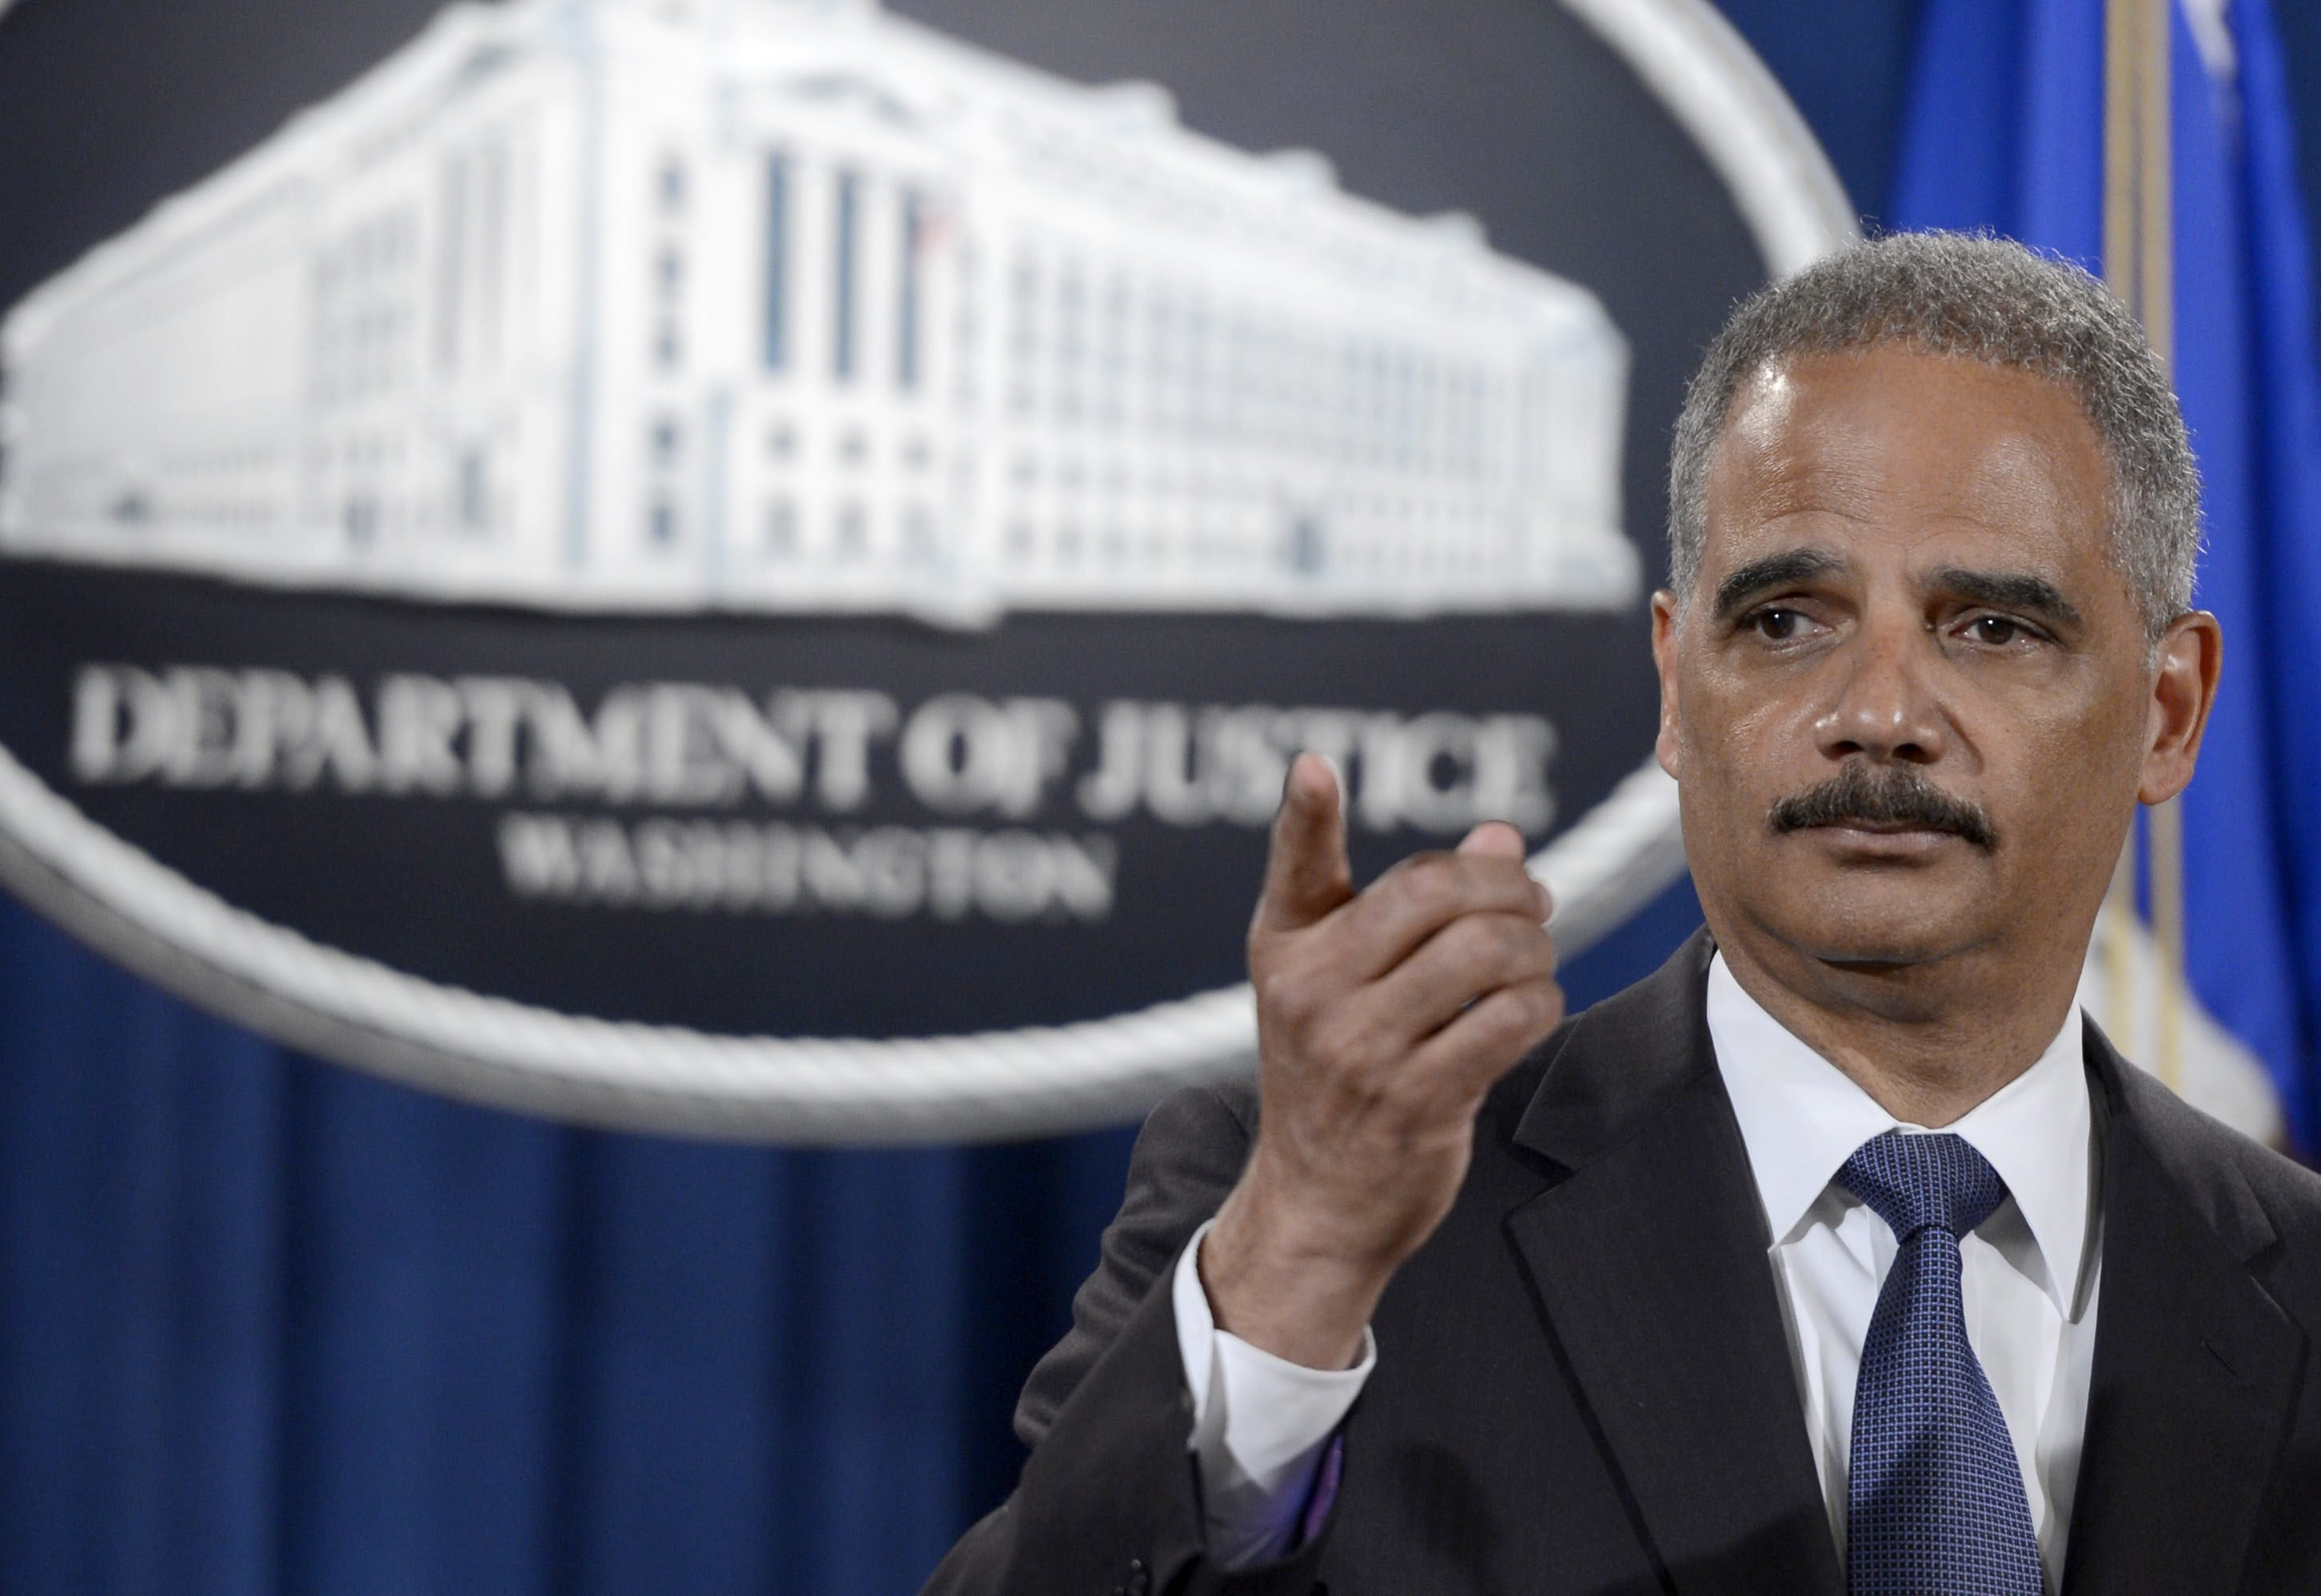 US Attorney General Eric Holder responds to a question from the news media on the Justice Department's efforts in Ferguson, Missouri during a press conference at the Justice Department in Washington, DC, on Sept. 4, 2014.